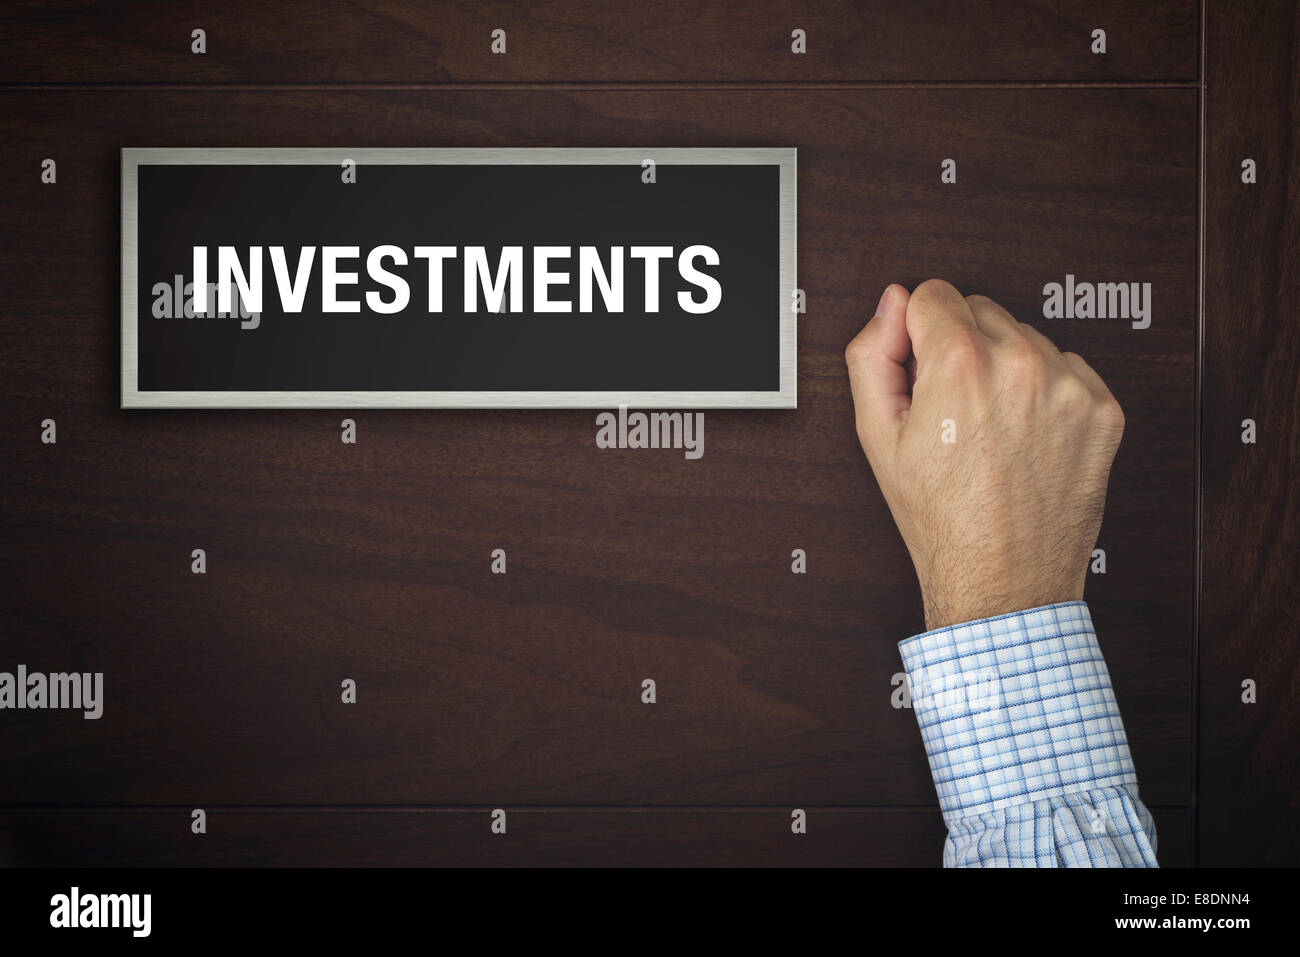 Male hand is knocking on Investments door, conceptual image. - Stock Image